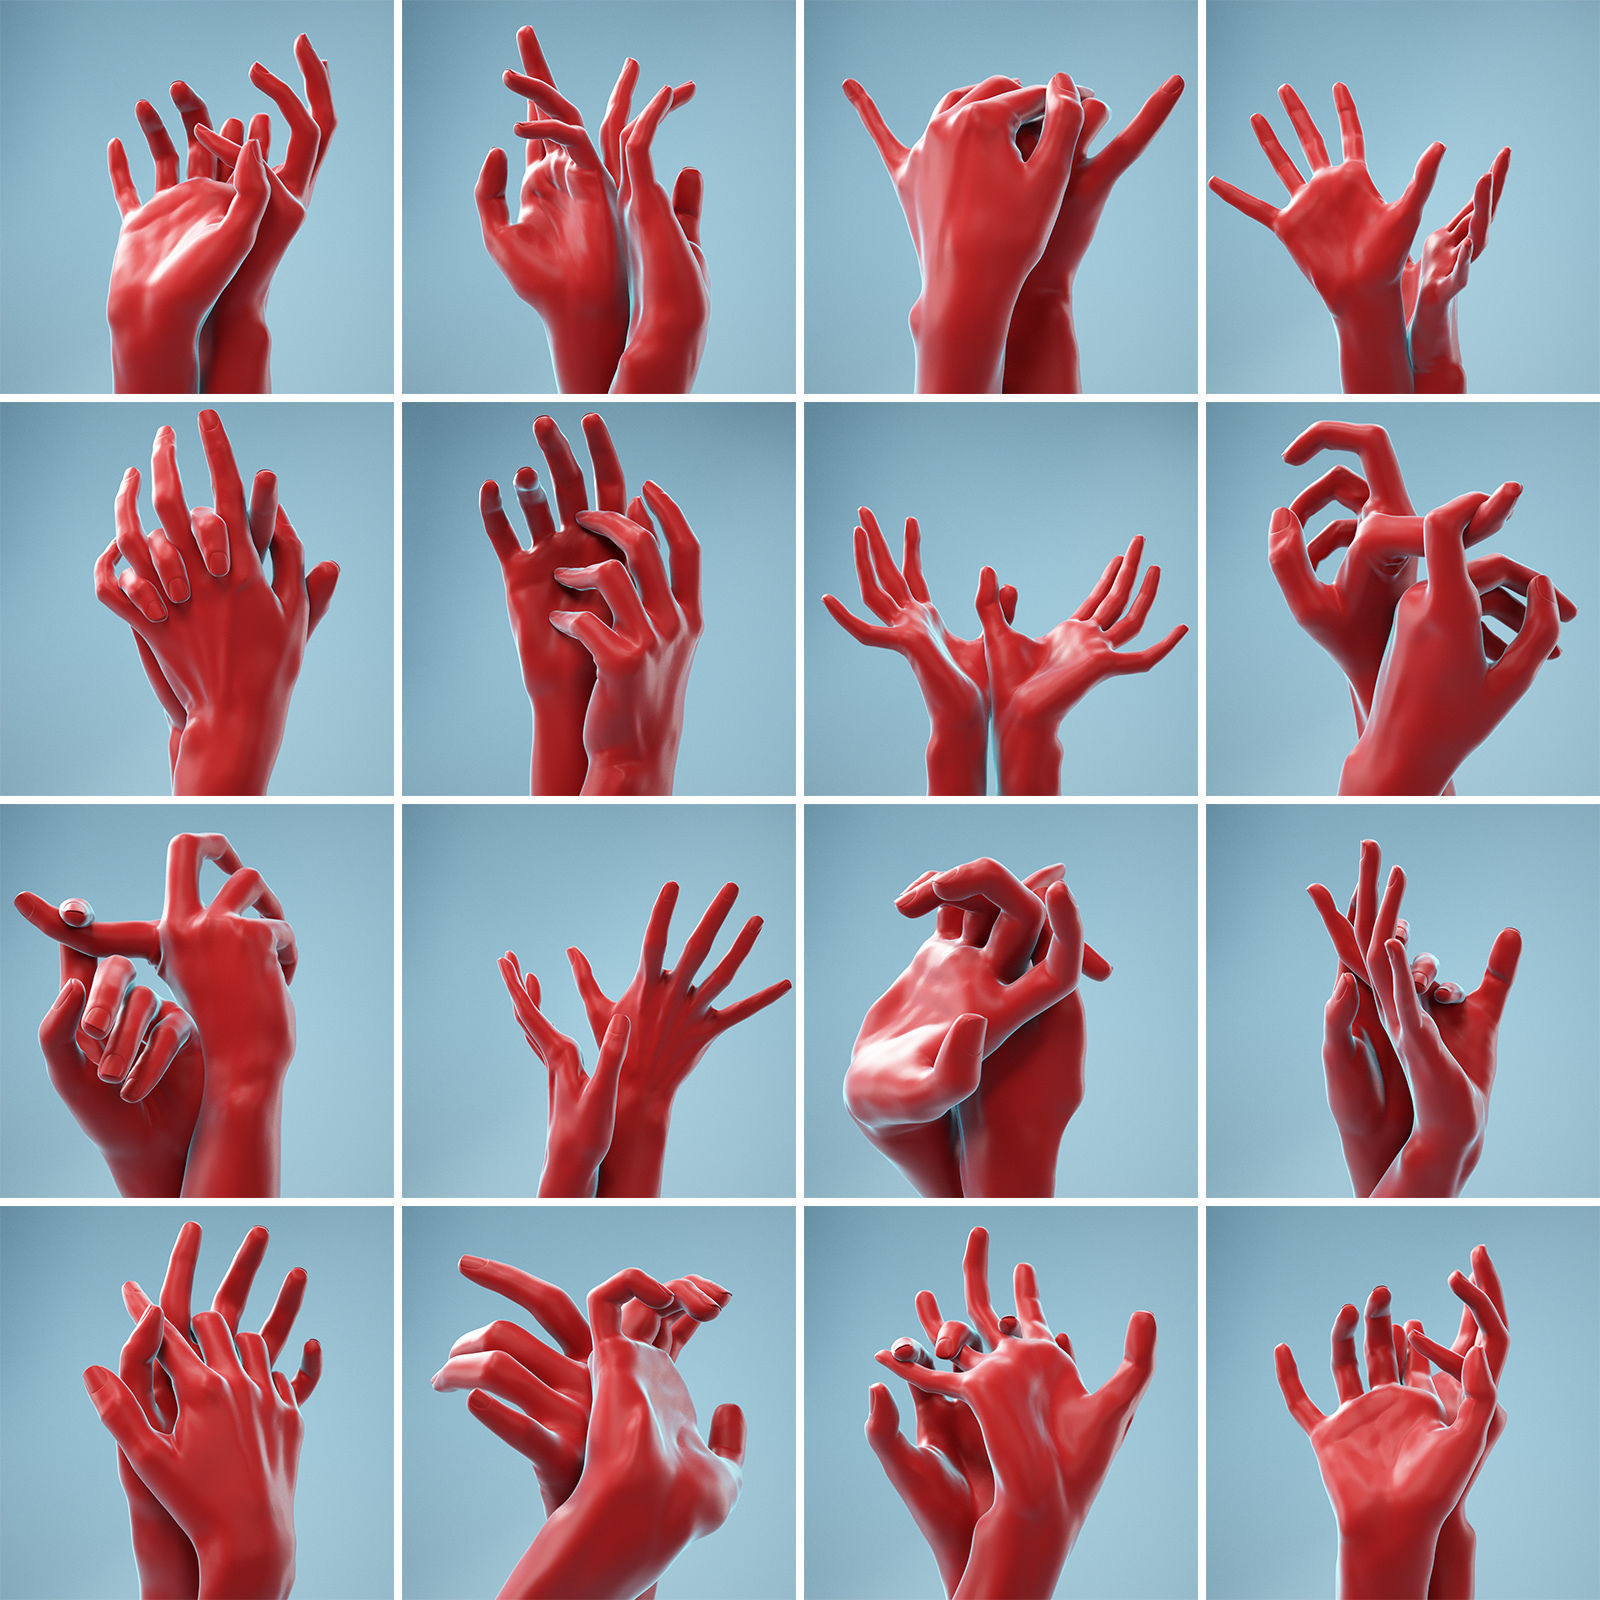 11 Interacting Realistic Hands